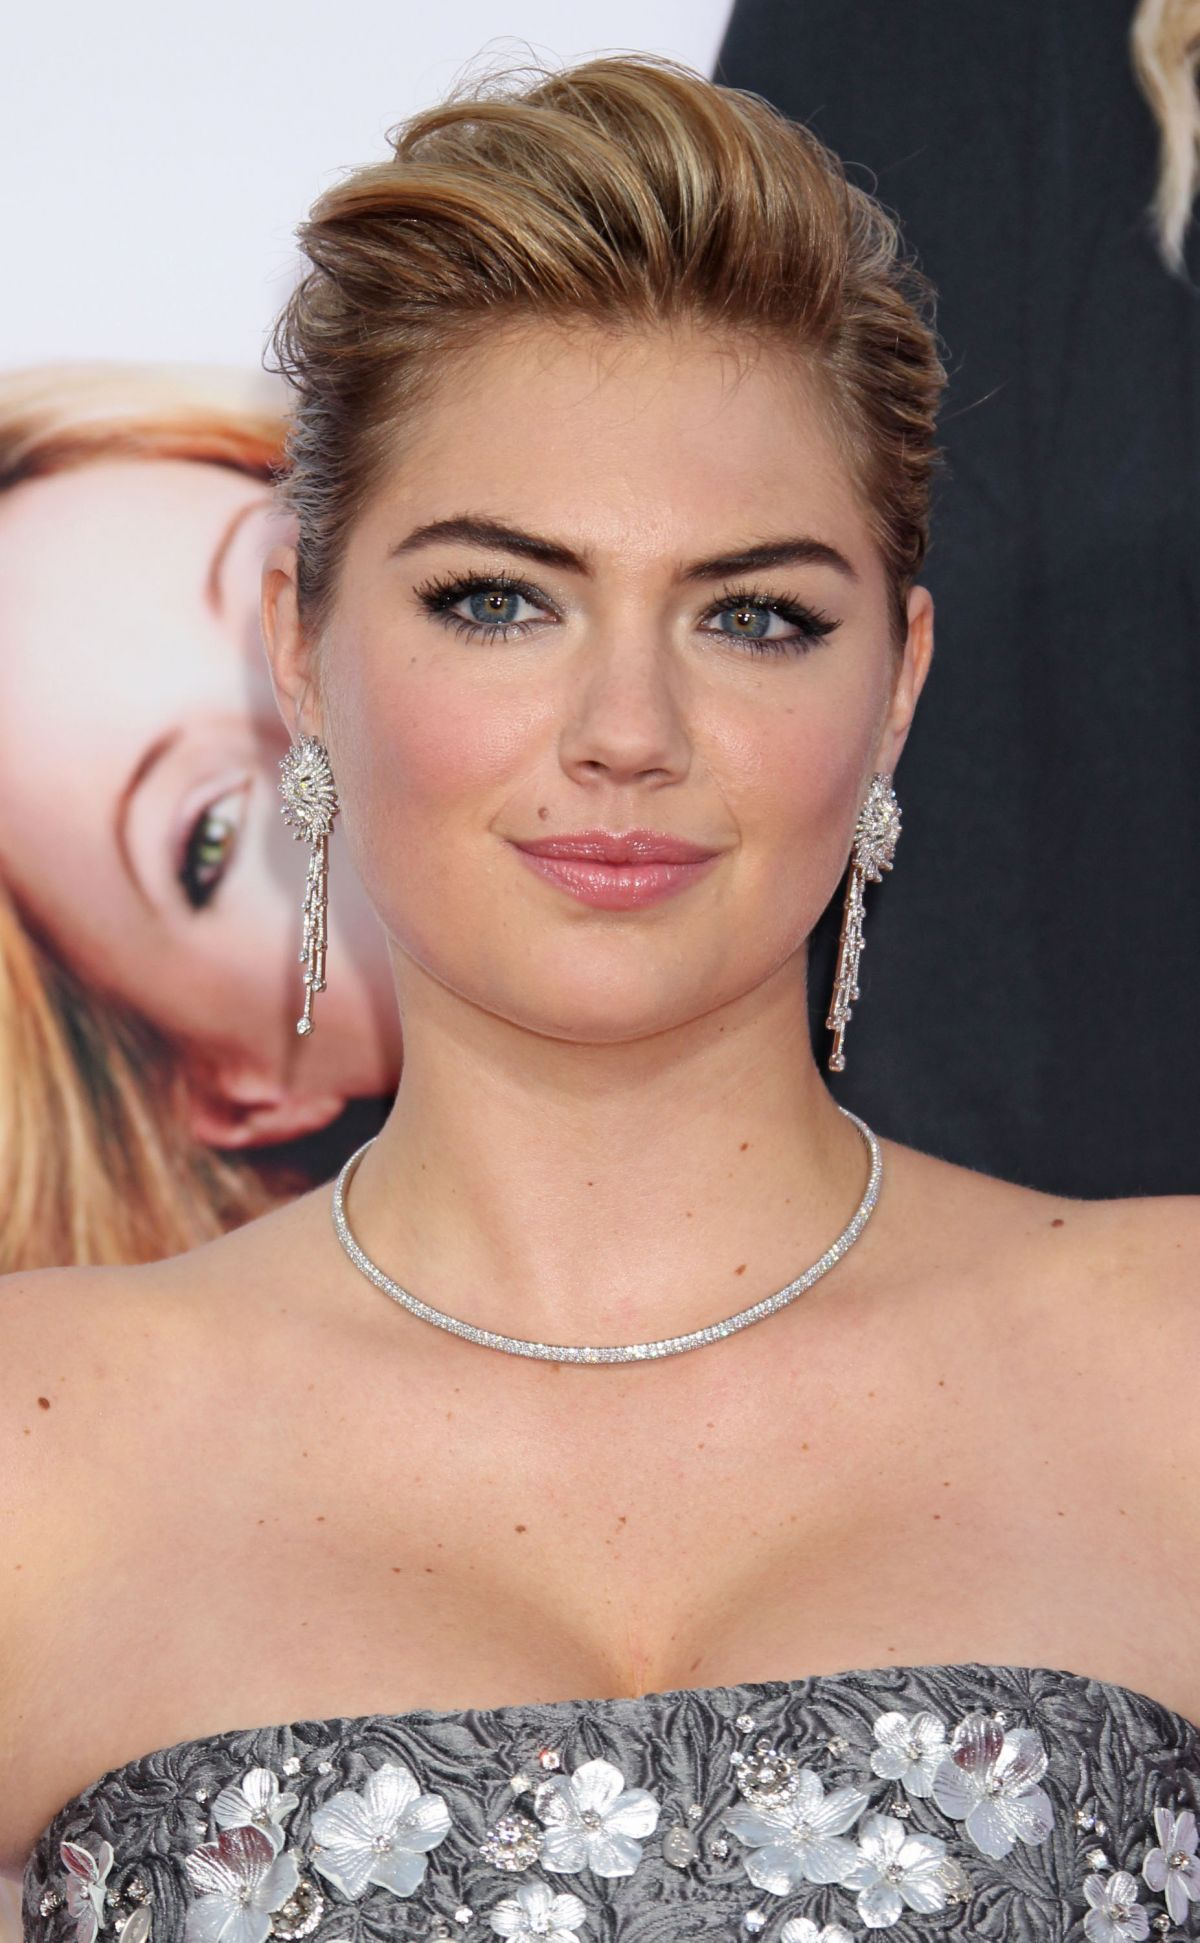 KATE UPTON at The Other Woman Premiere in Westwood